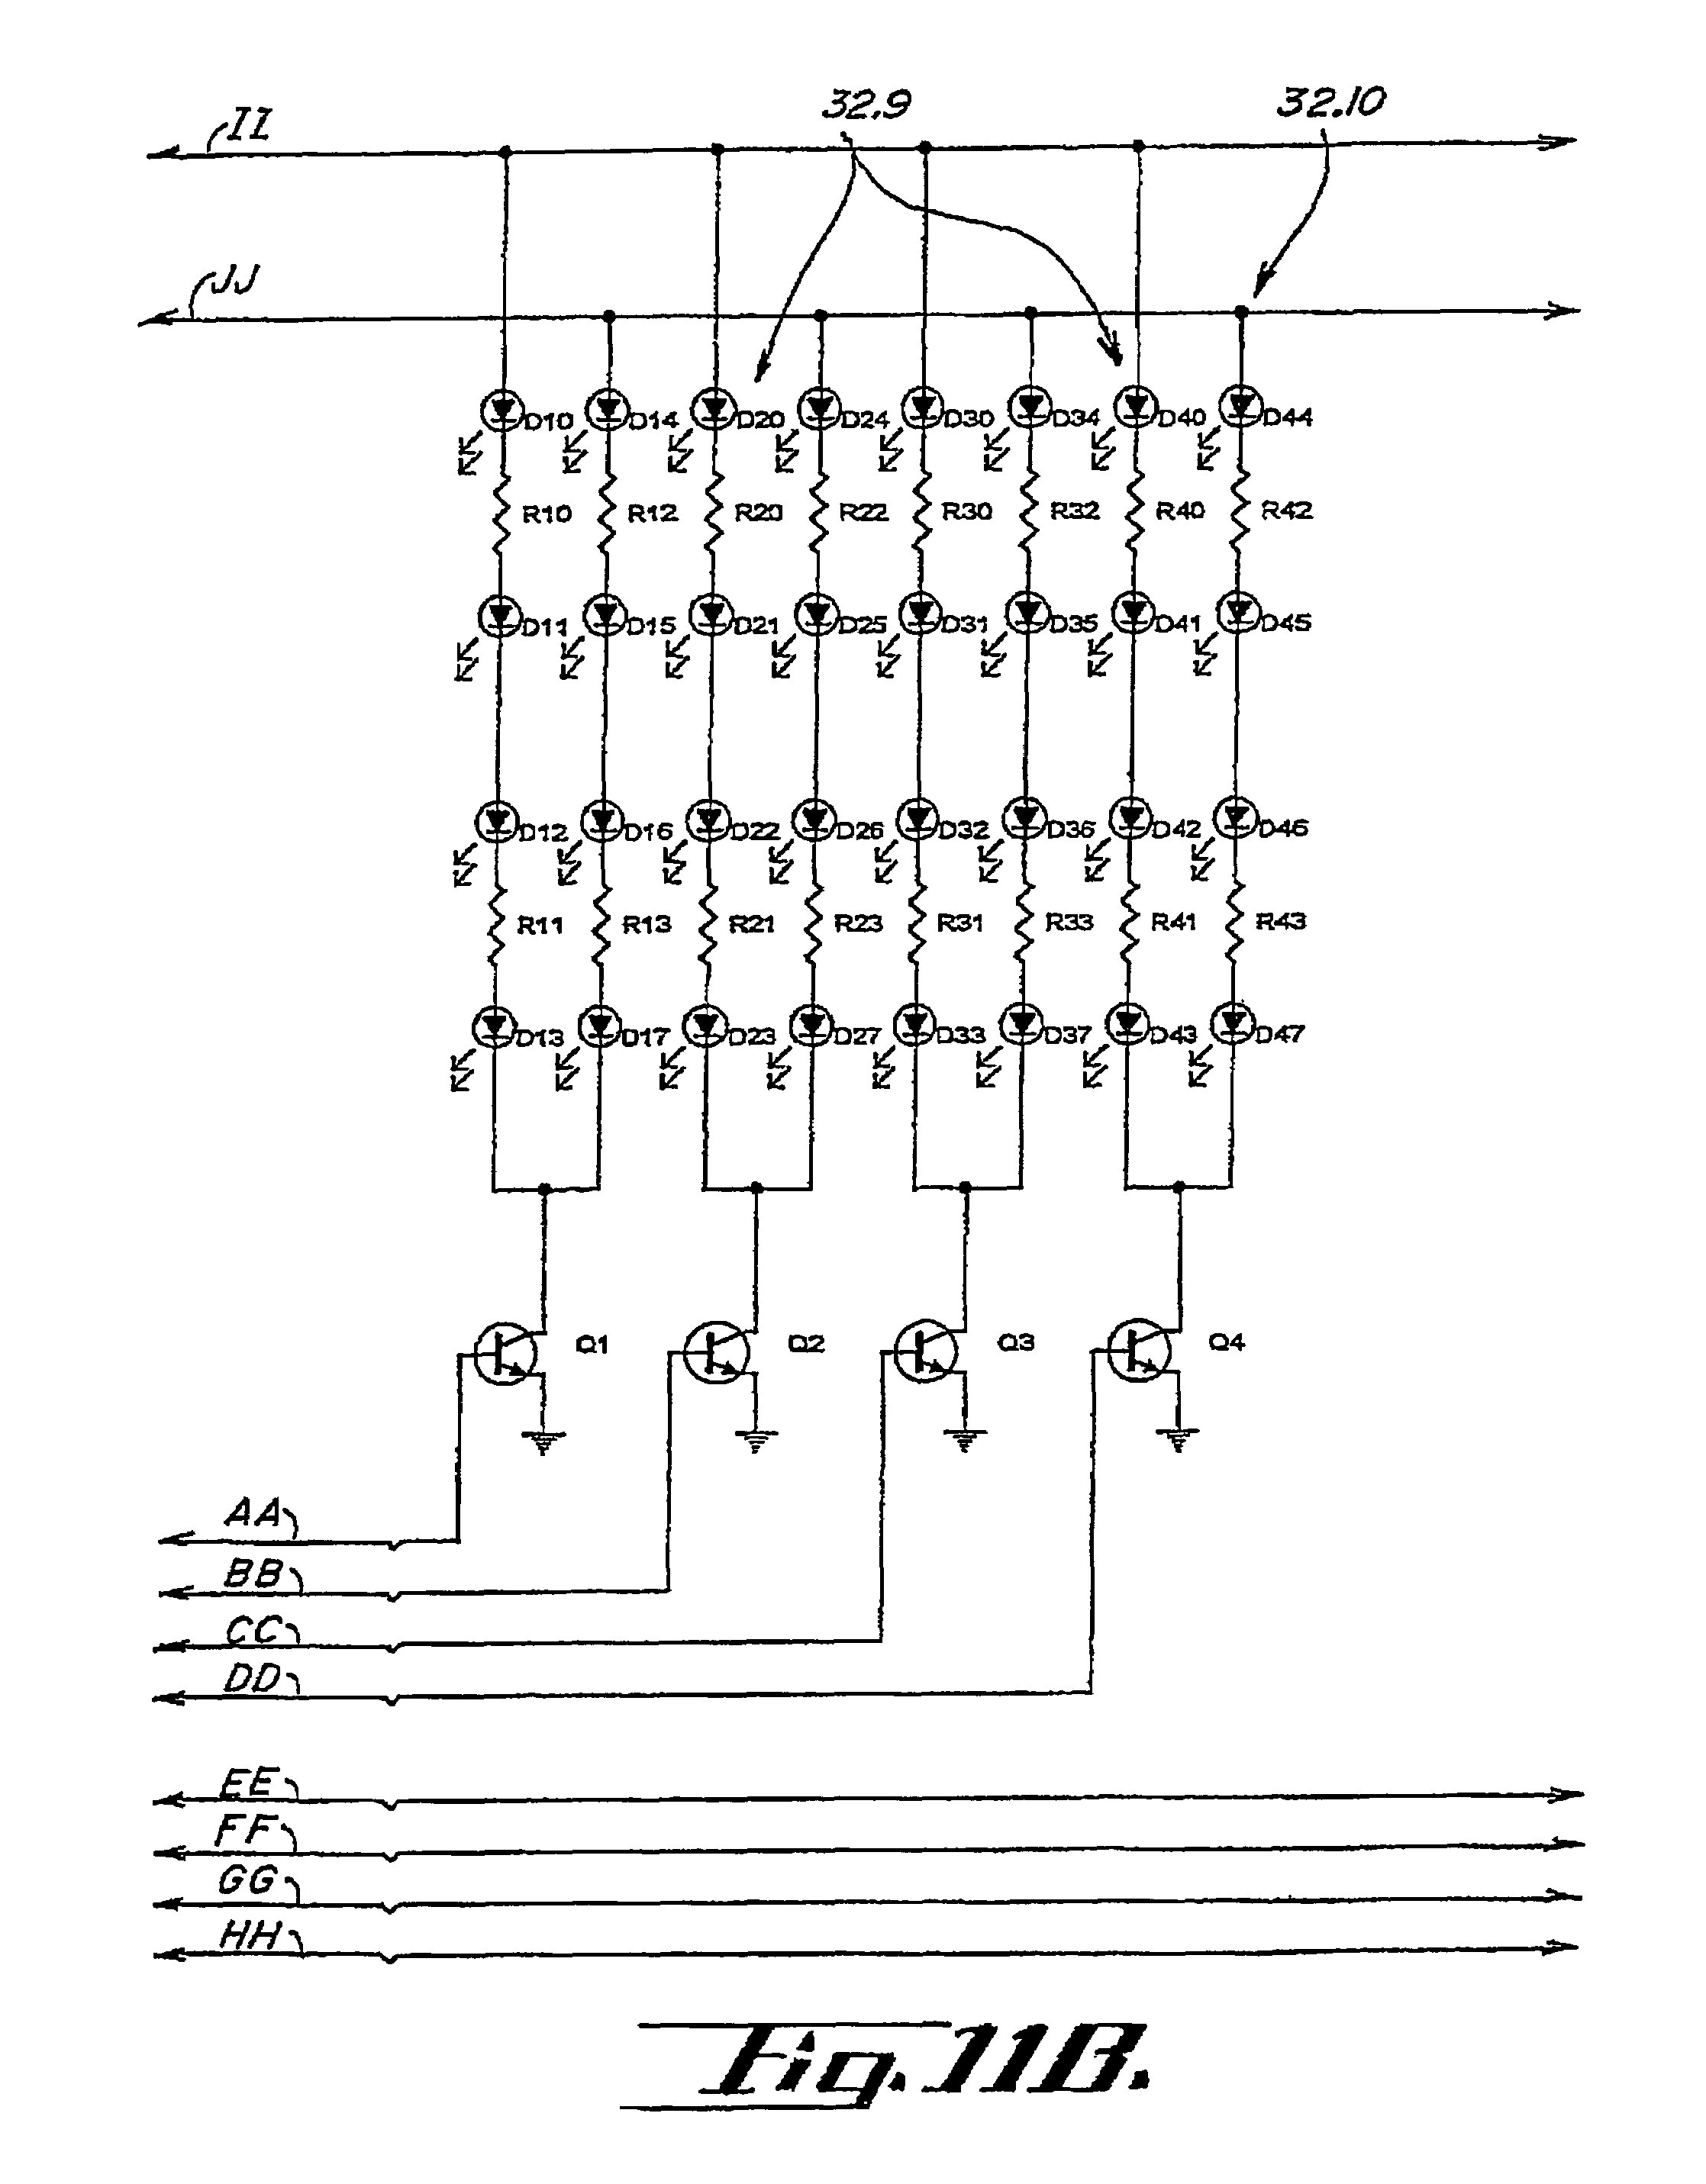 Code Wire Diagrams Outlet Diagram Wiring Christmas Light 3 Symbols Sample Physical Layout Full